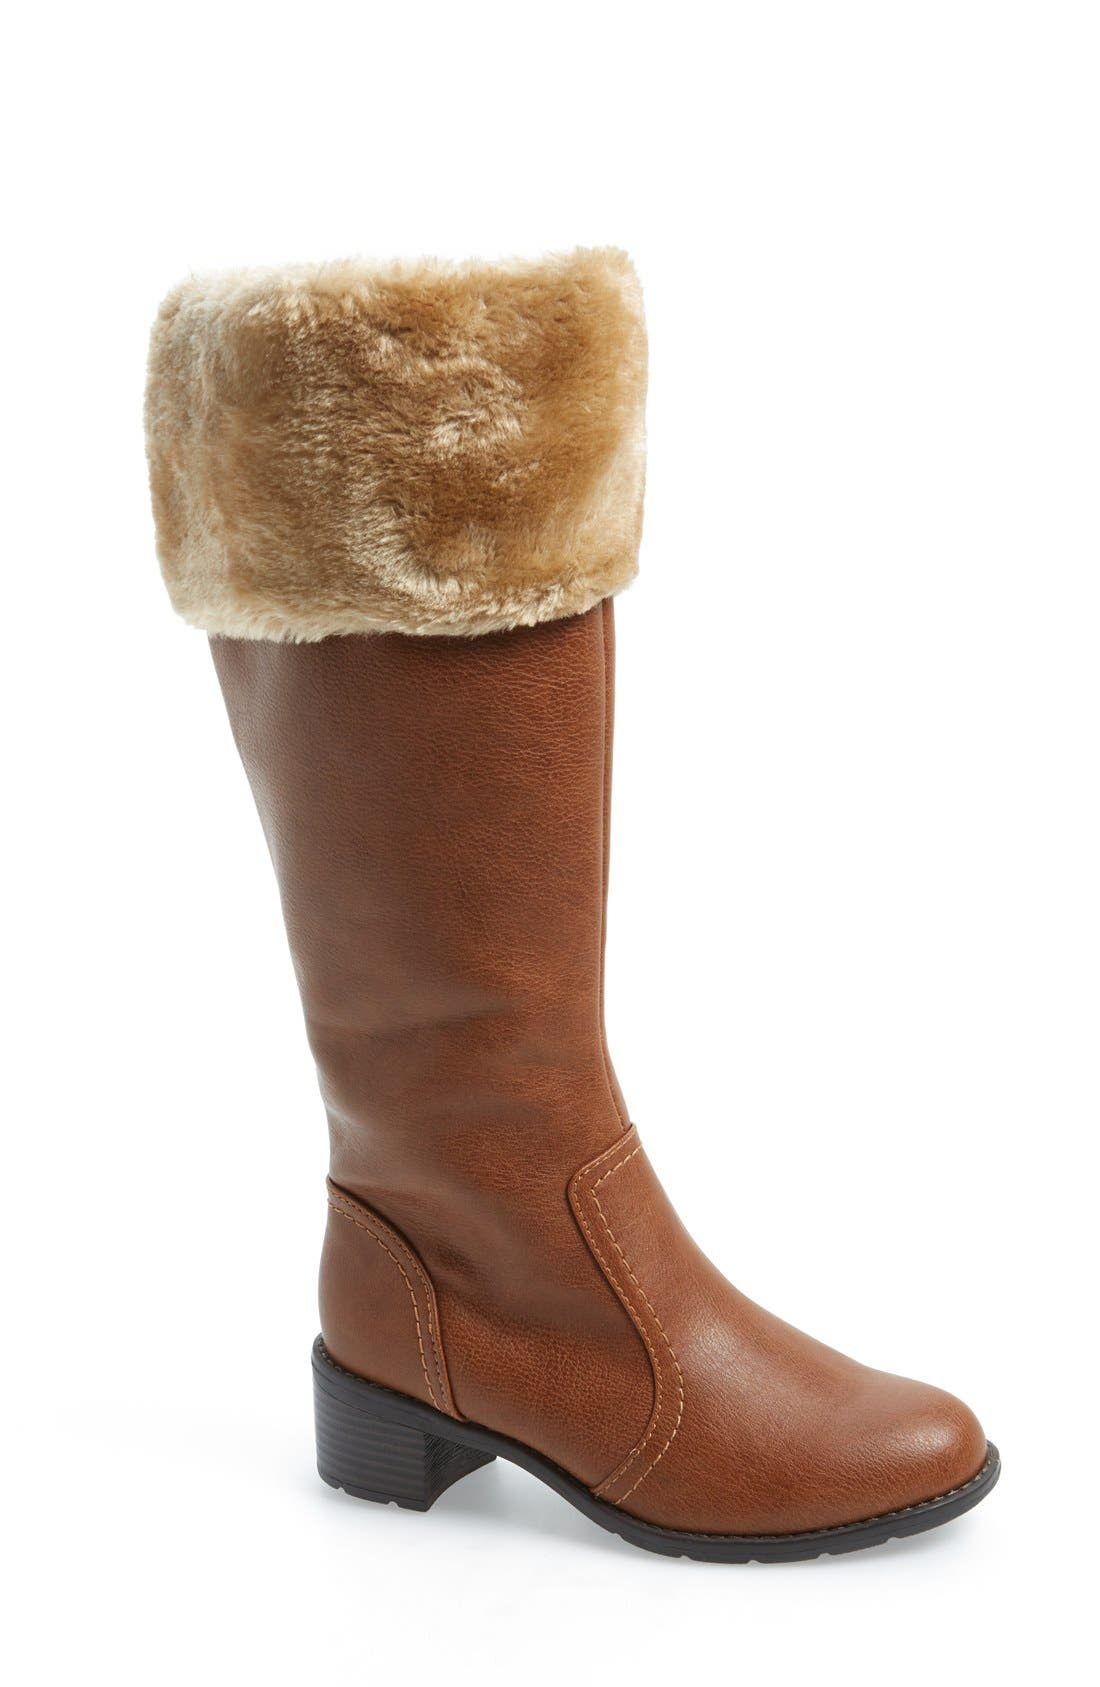 Alternate Image 1 Selected - Softspots'Campbell' Tall Boot (Women)